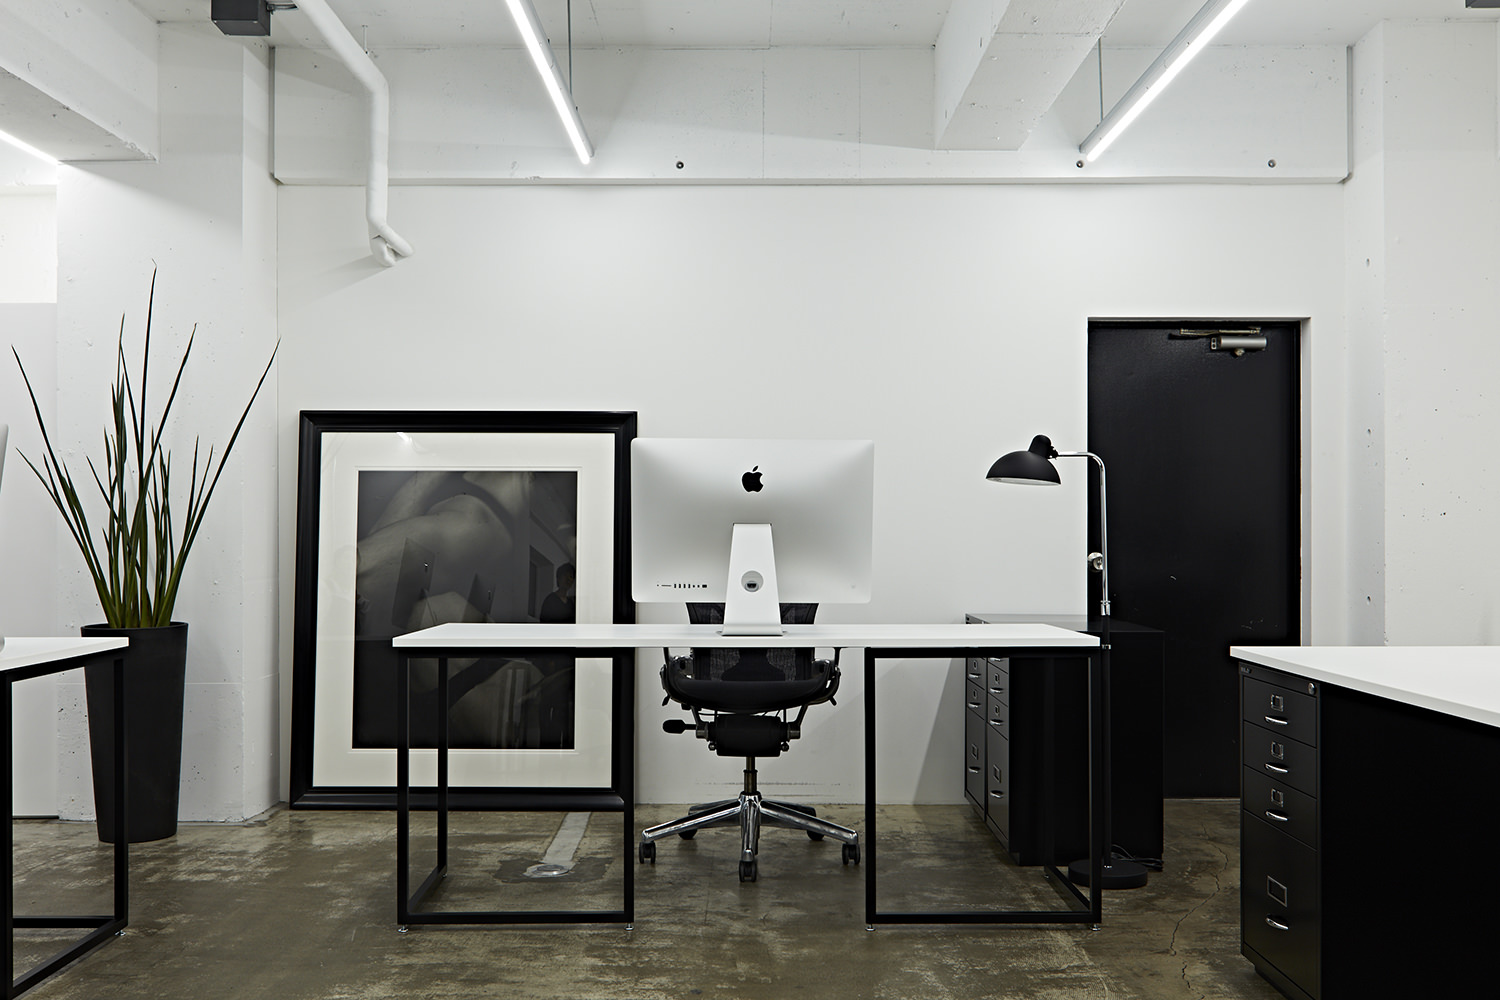 VAPX office image